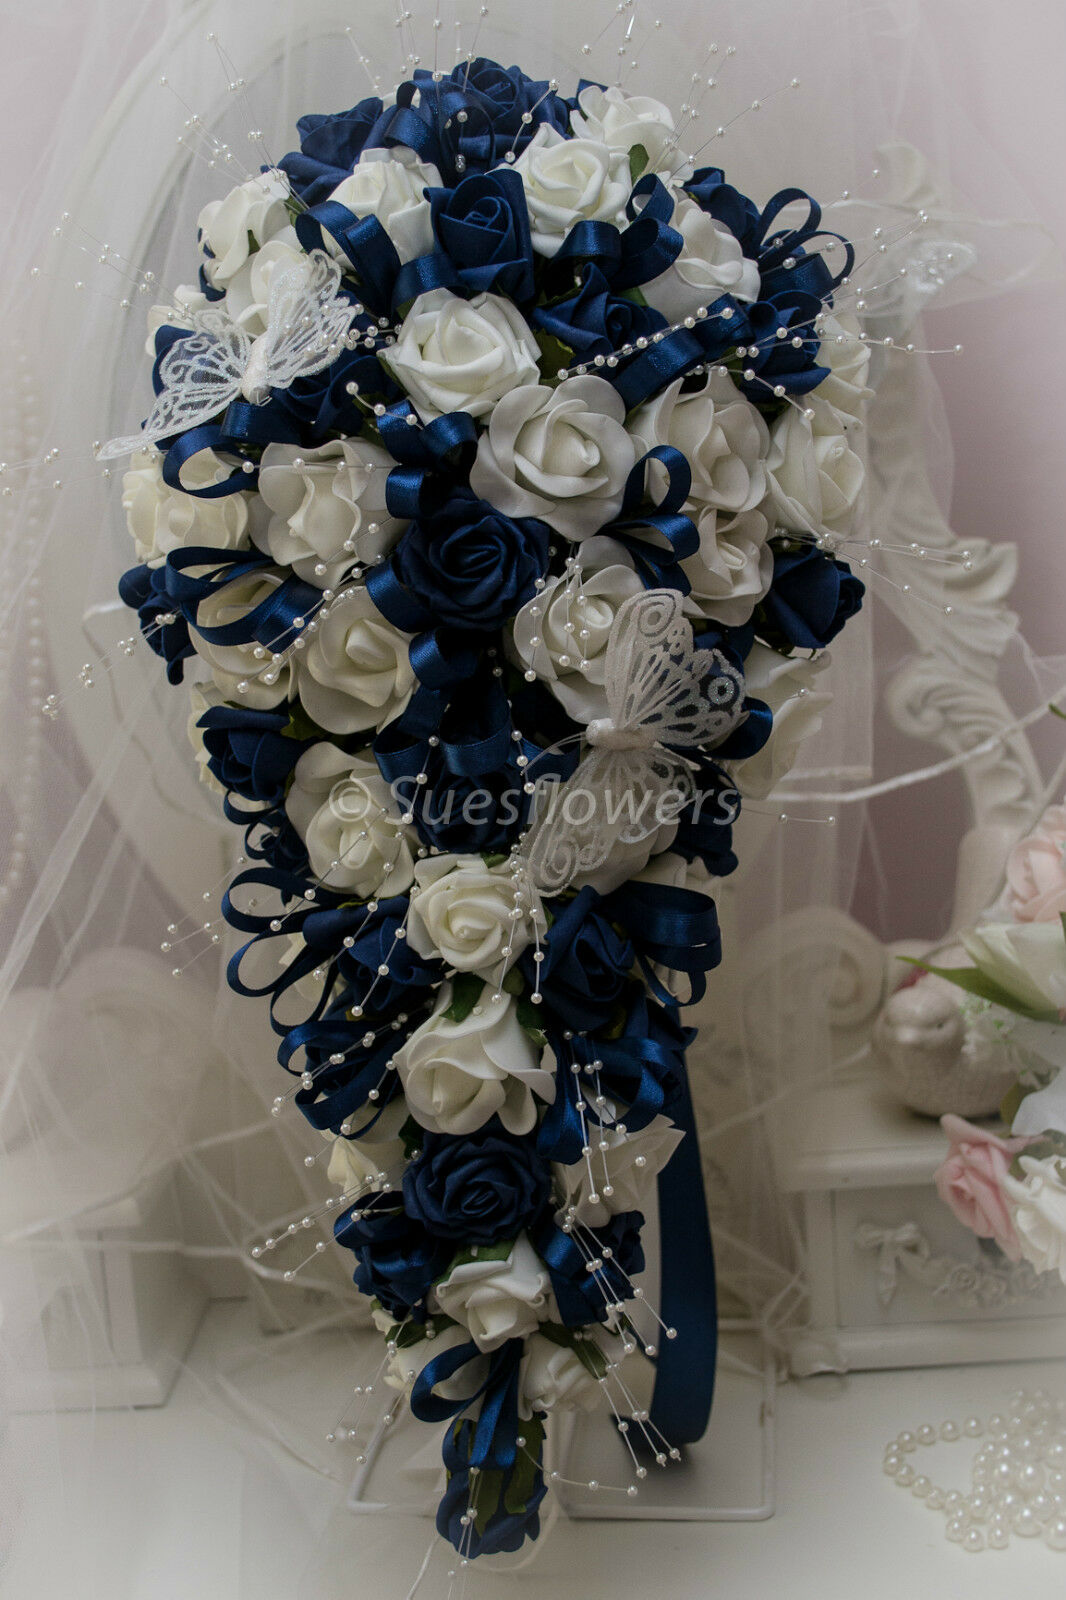 About Wedding Flowers Brides Teardrop Bouquet In Navy Blue And Ivory